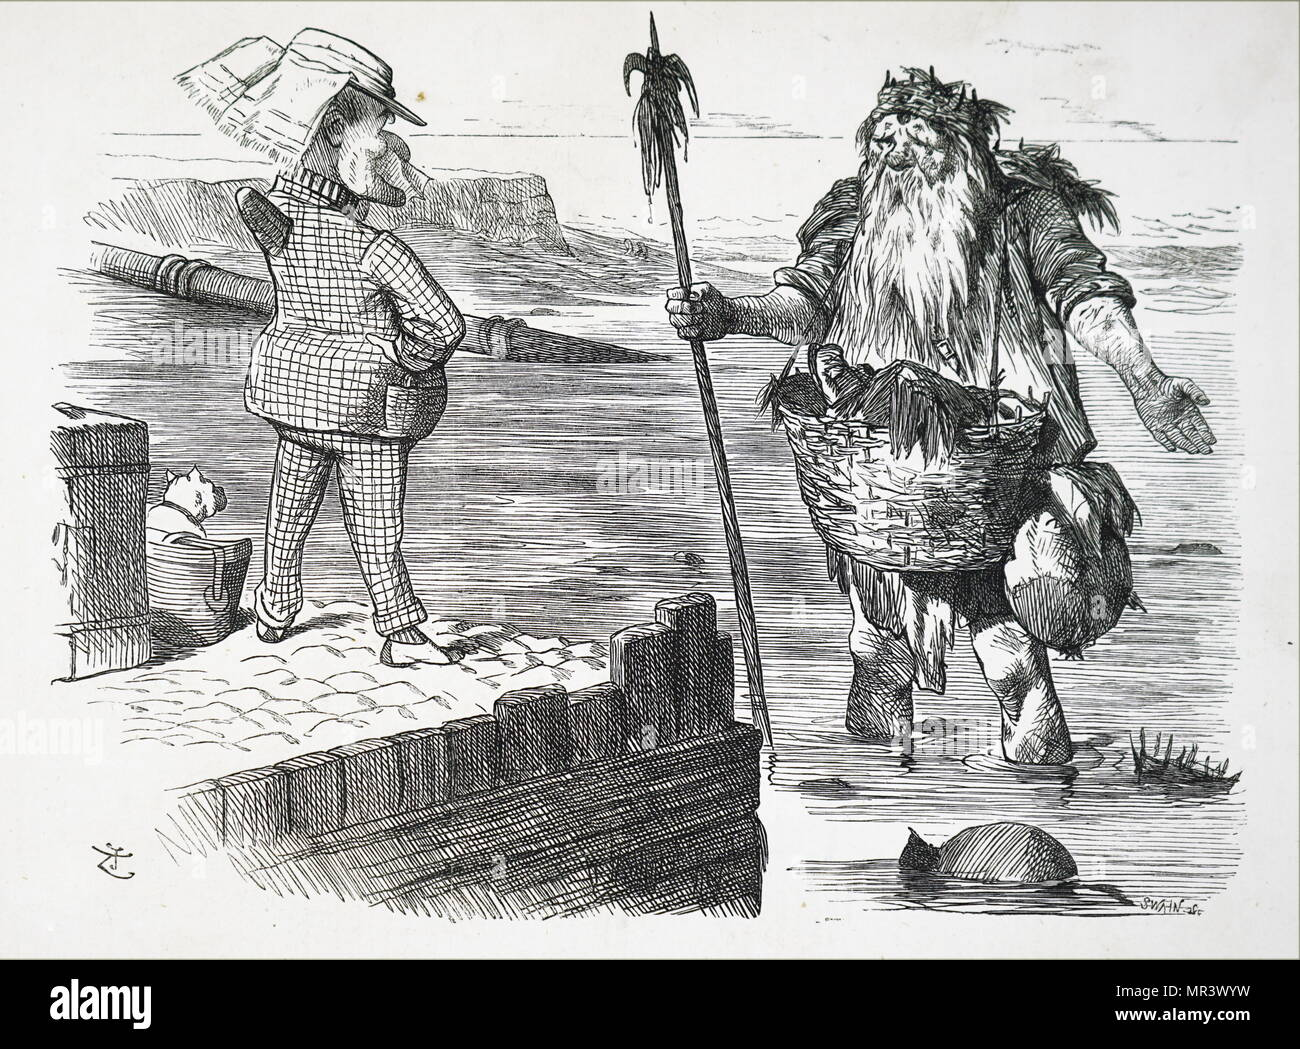 Cartoon depicting Old Father Thames looking ashamed of his filthiness. Illustrated by John Tenniel (1820-1914) an English illustrator graphic humourist, and political cartoonist. He was knighted for his artistic achievements in 1893. Dated 19th century - Stock Image